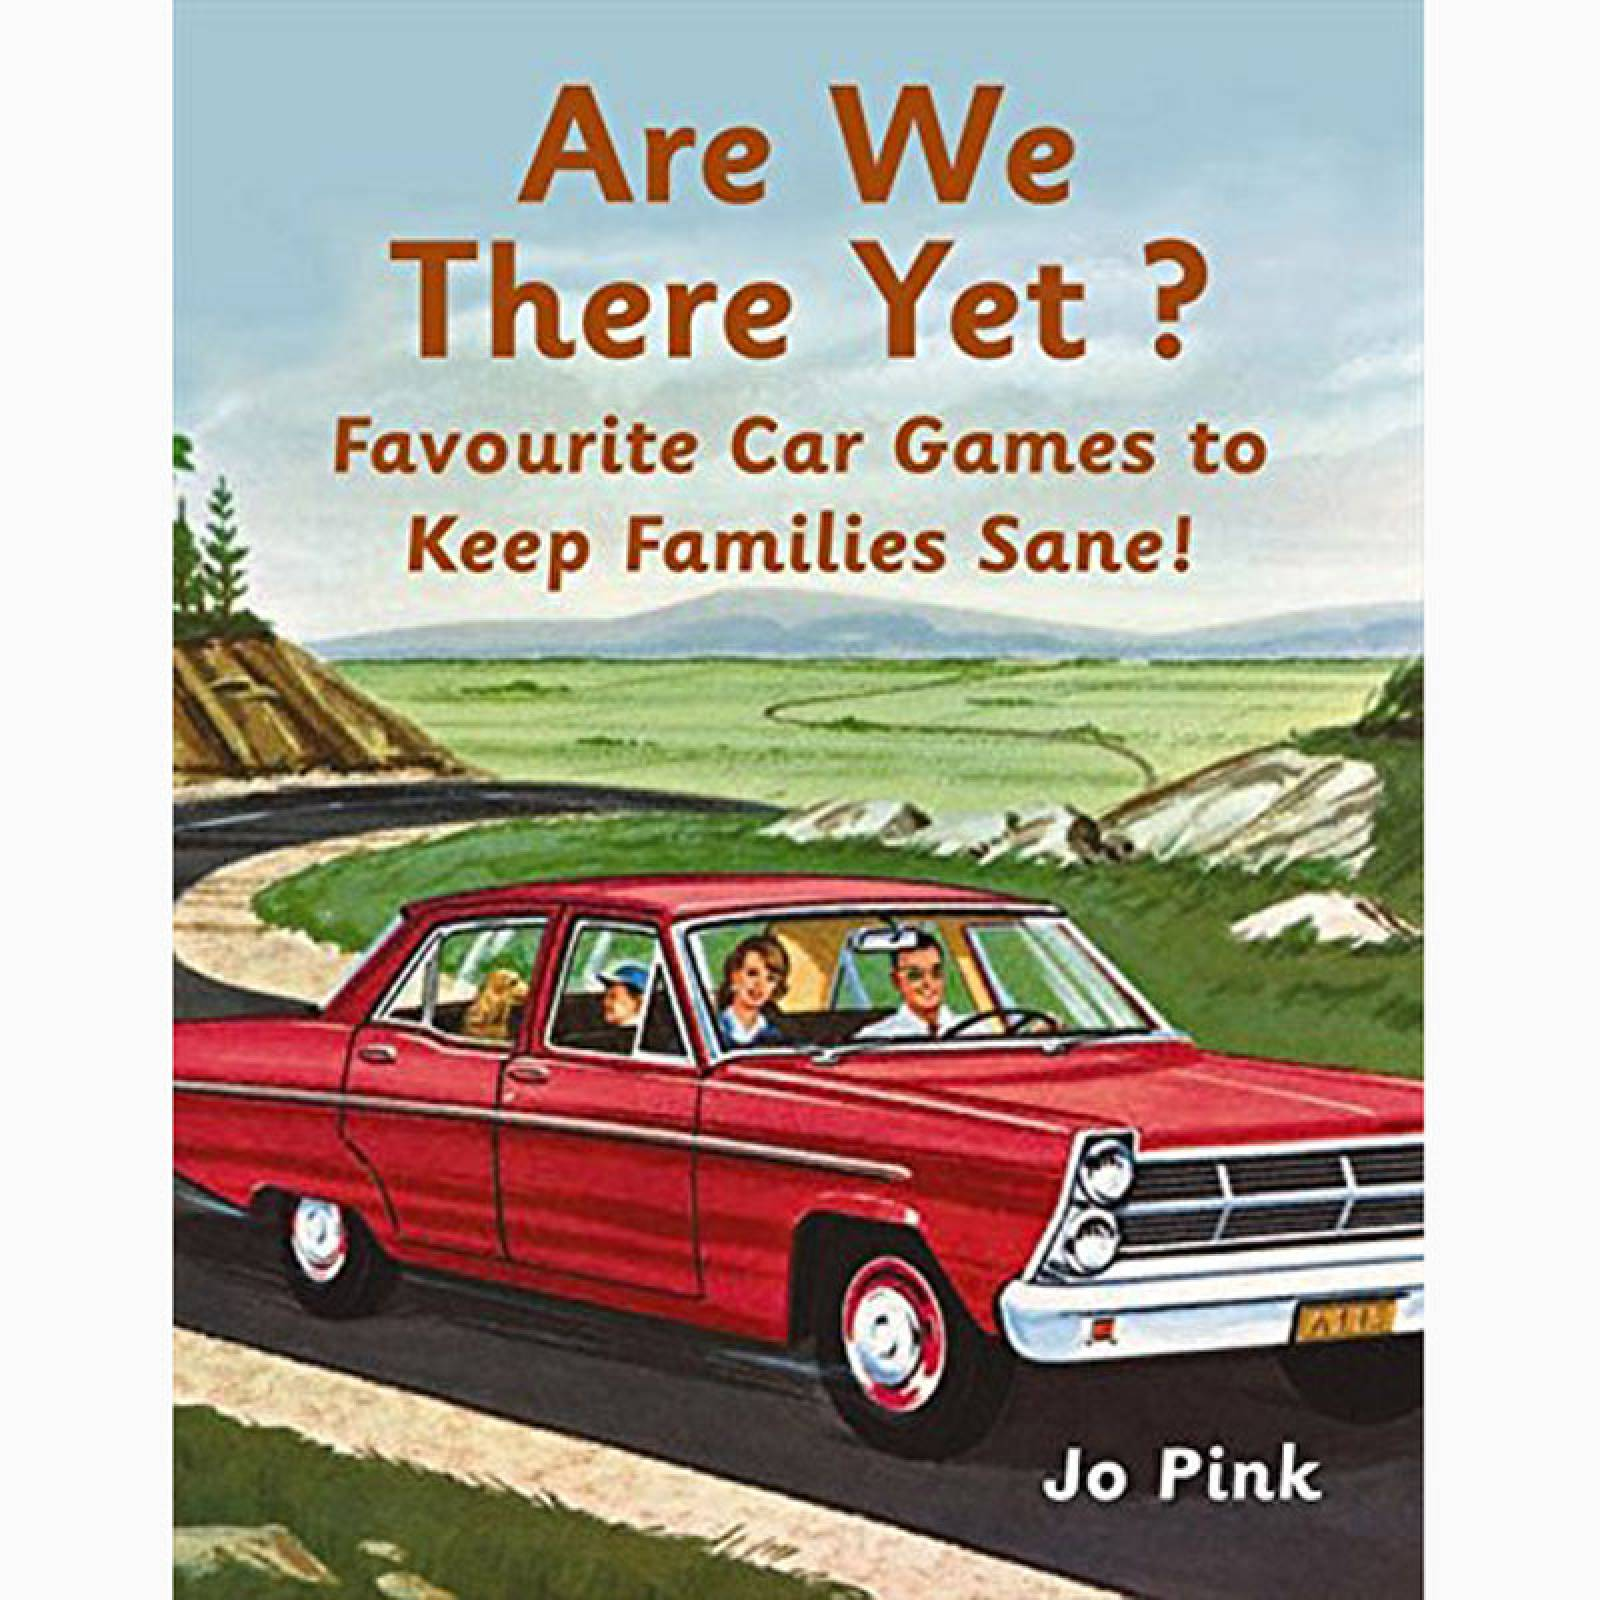 Are We There Yet? - Hardback Book